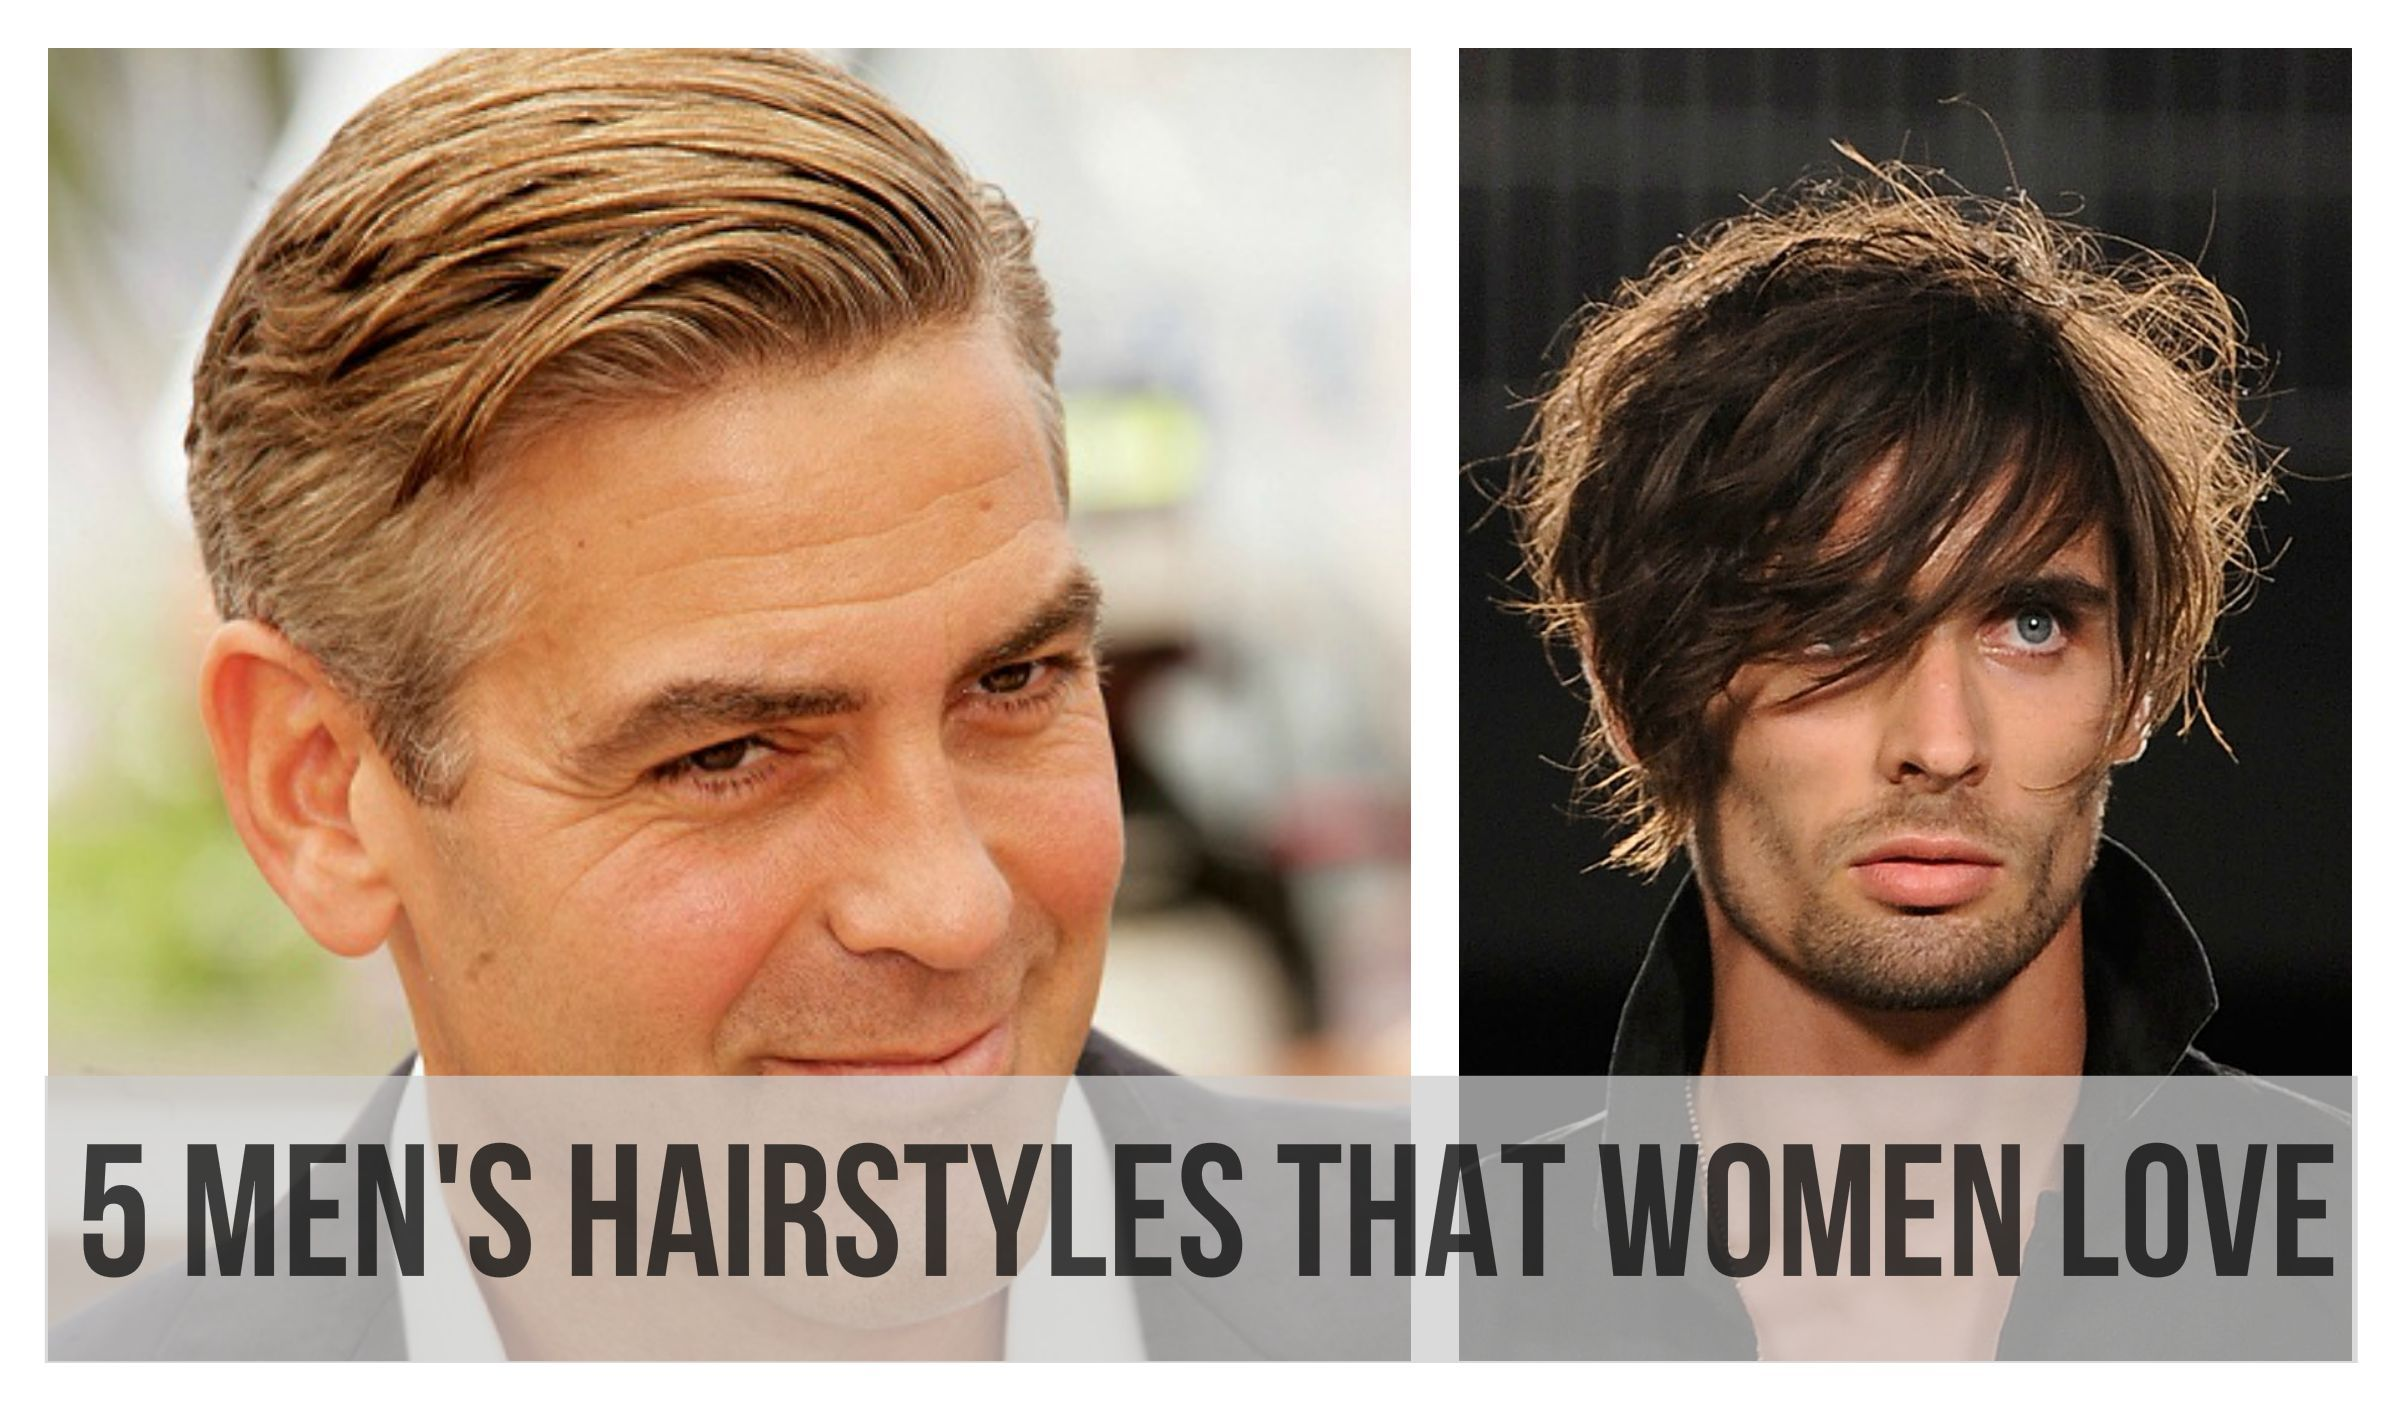 5 men's hairstyles that women love (#2 is our favorite